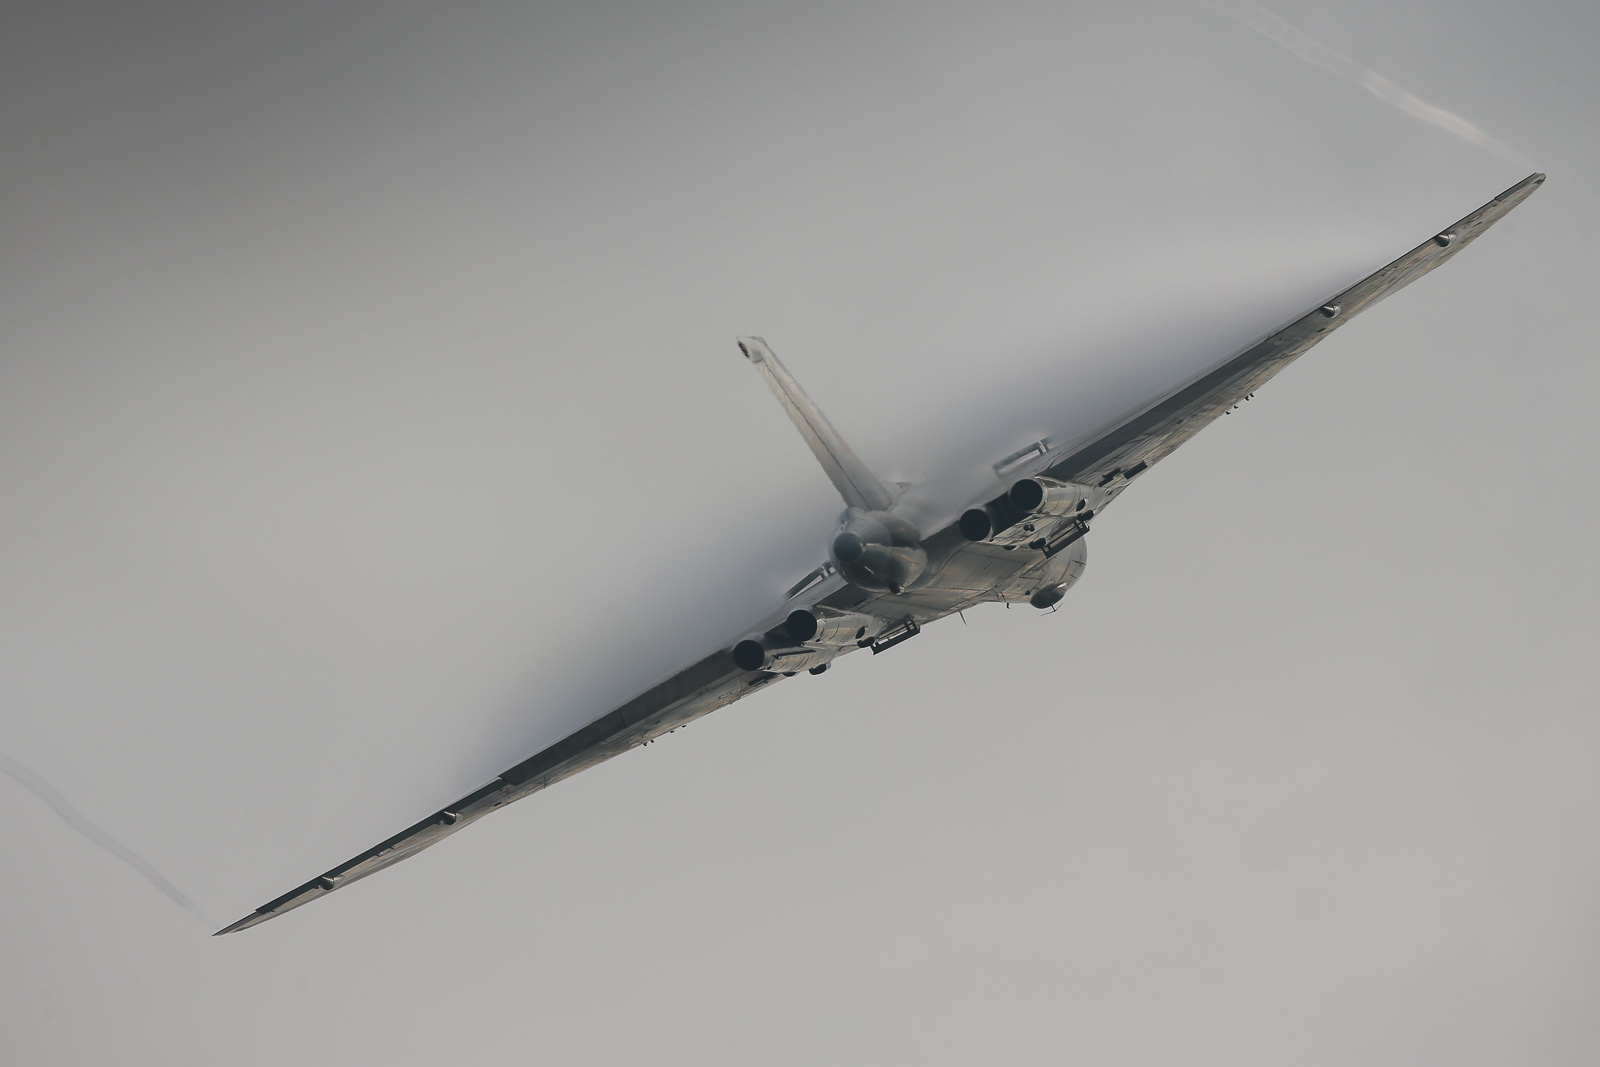 Pulling vapor, the XH558 thrills the crowd at the former RAF Finningley. (photo by Steven Comber)